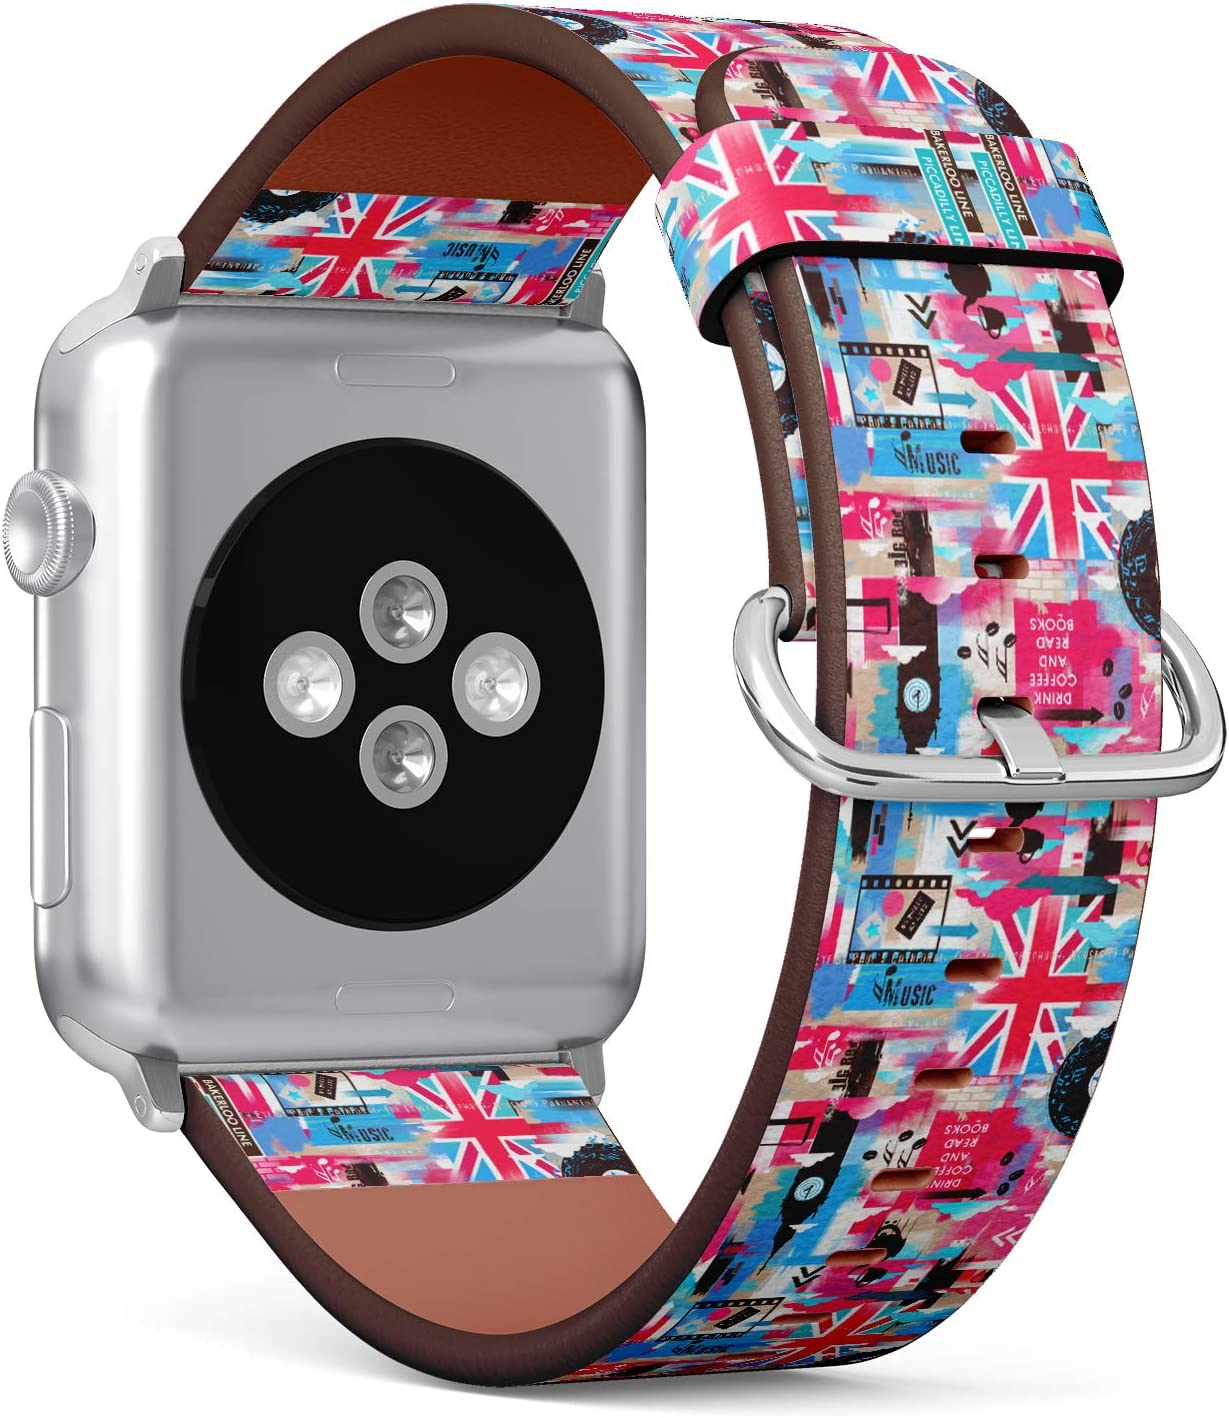 S-Type Leather Bracelet Watch Band Strap Replacement Wristband Compatible with Apple Watch 4/3/2/1 Sport Series 38mm 40mm 42mm 44mm - London Pattern with Phone Booth, Big Ben, Flag of Great Britain